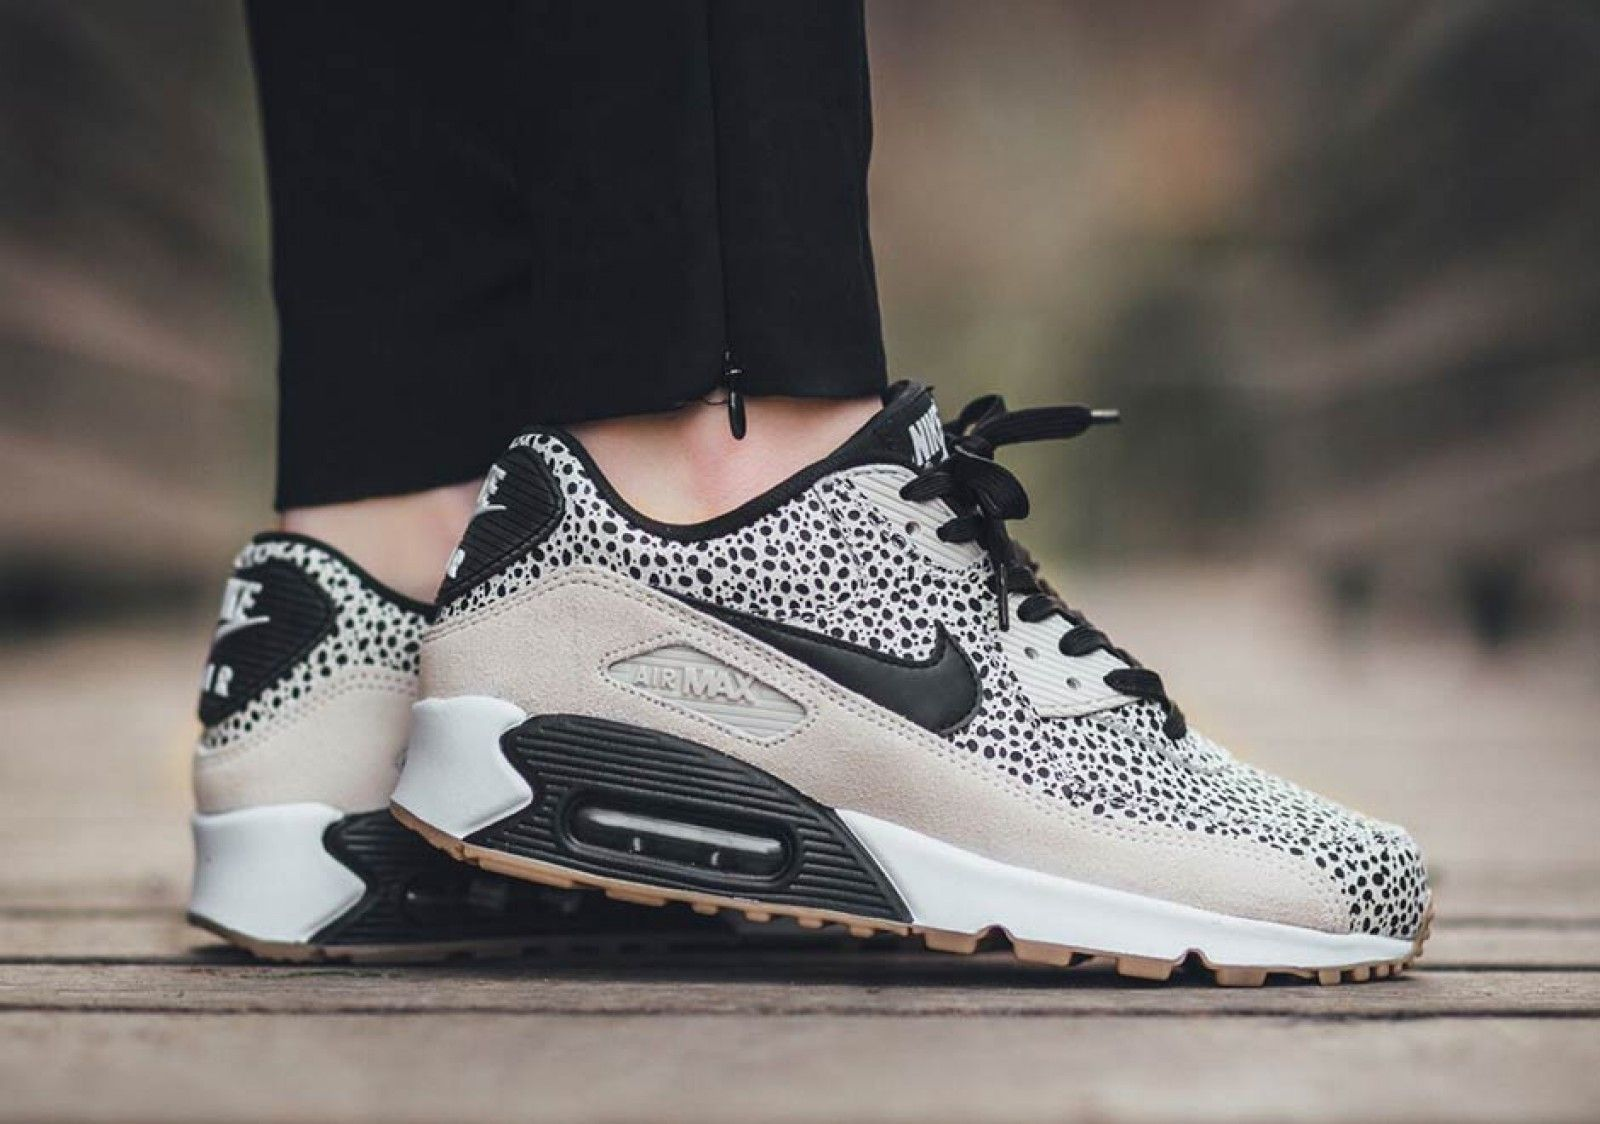 Women's Nike Wmns Air Max 90 Essential Black Dark Grey Bright Crimson Gum Light Brown Sneakers : R22